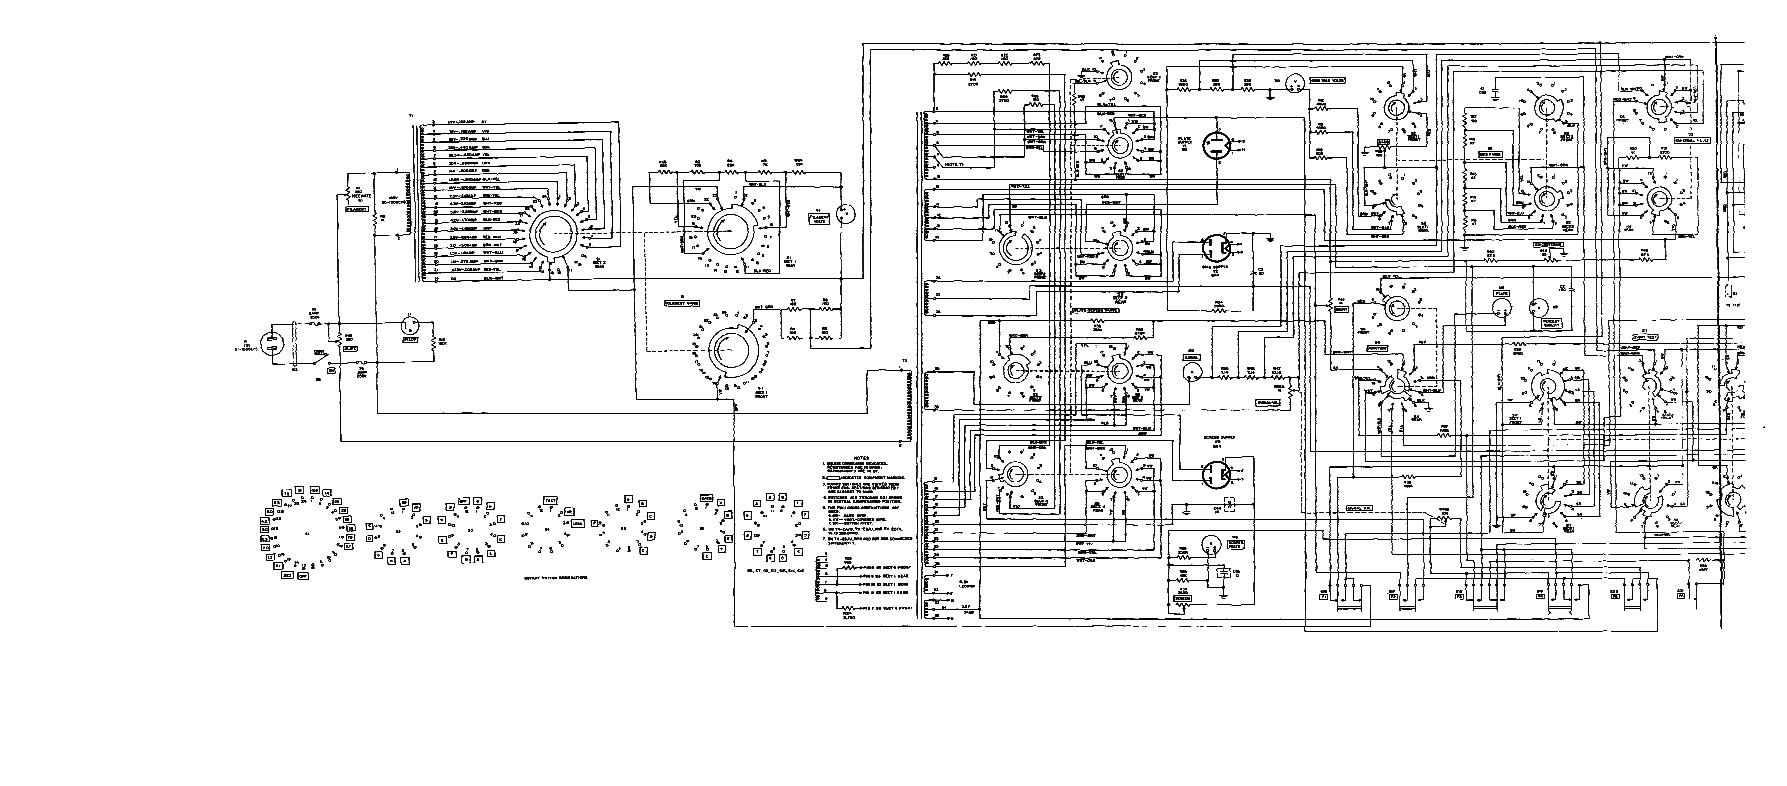 Tv Circuit Diagram Trusted Wiring Samsung Galaxy S Figure 26 Test Set Electron Tube 2 U Schematic Air Conditioning